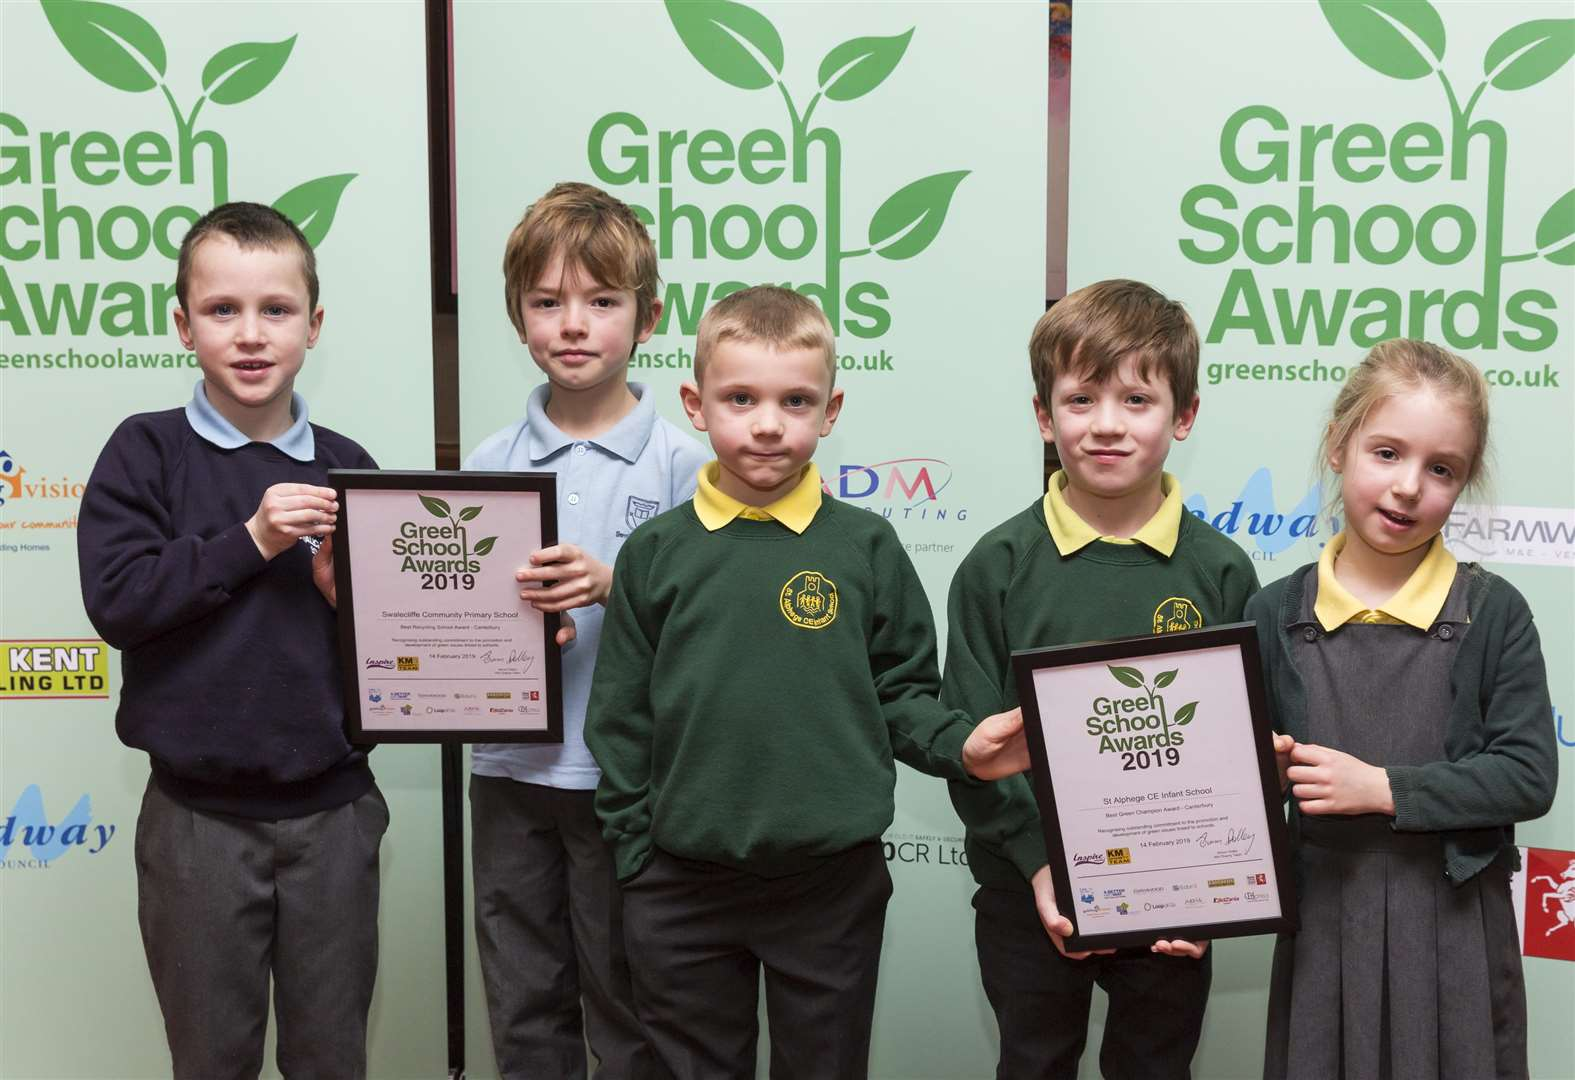 Awards praise eco-friendly schools